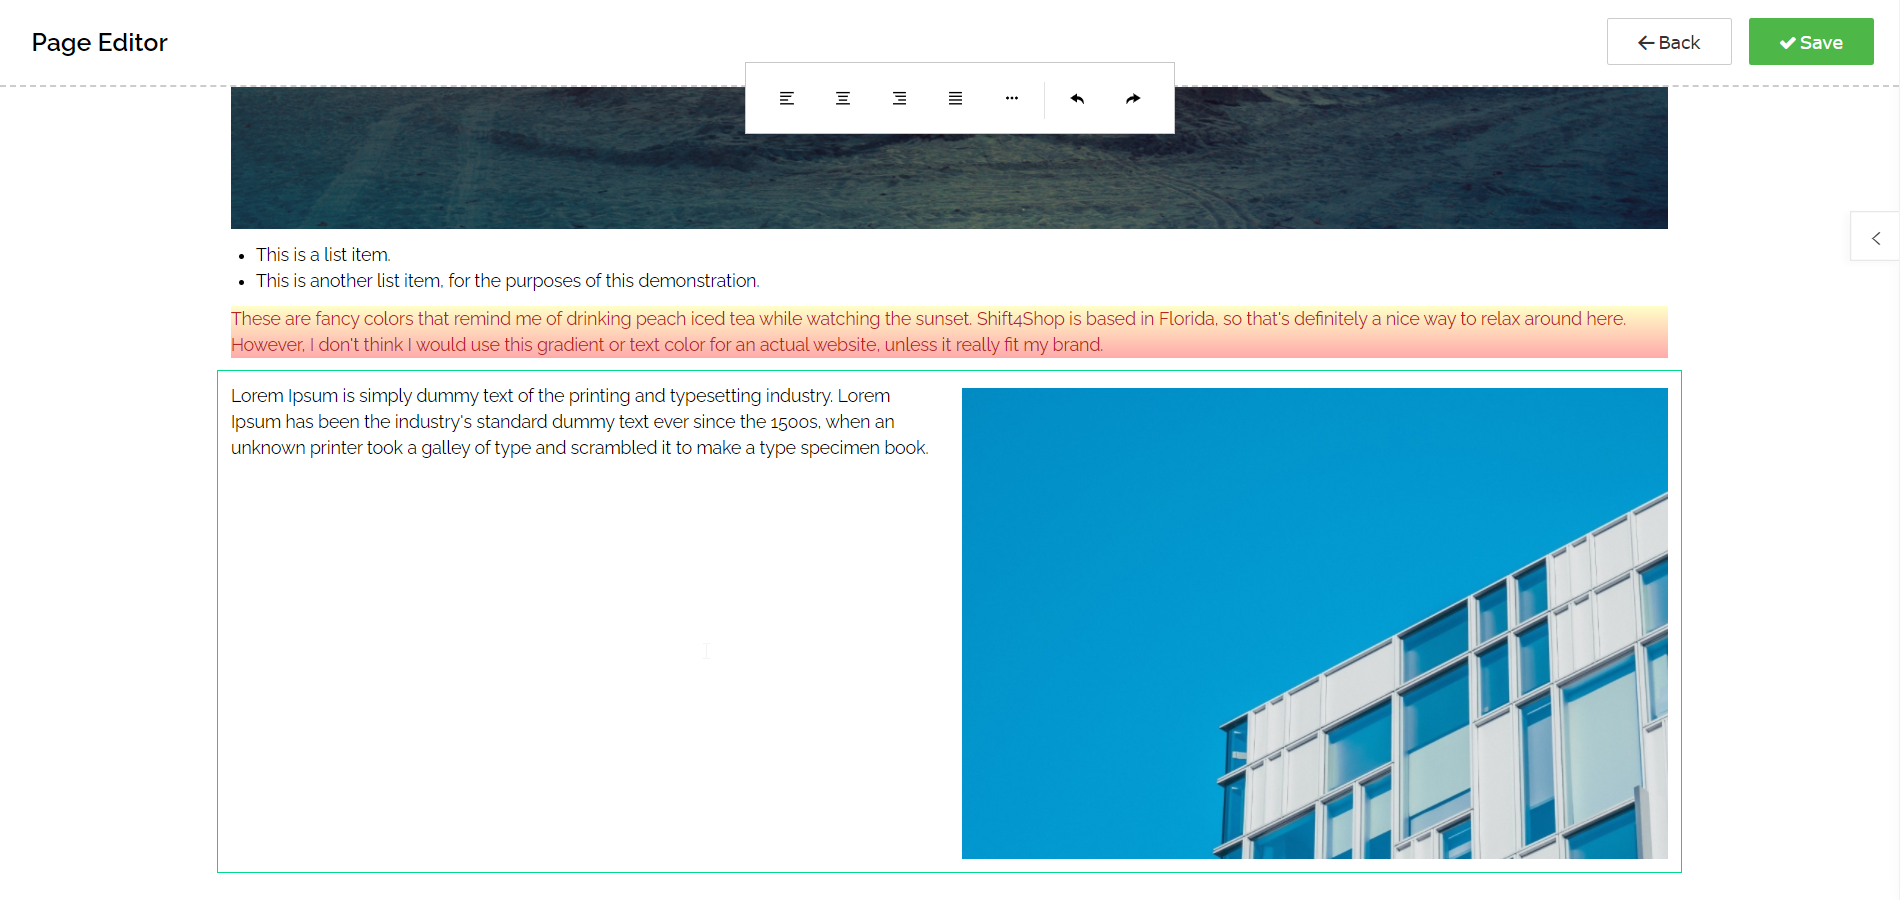 Using the Page Editor - New Snippet Highlighted